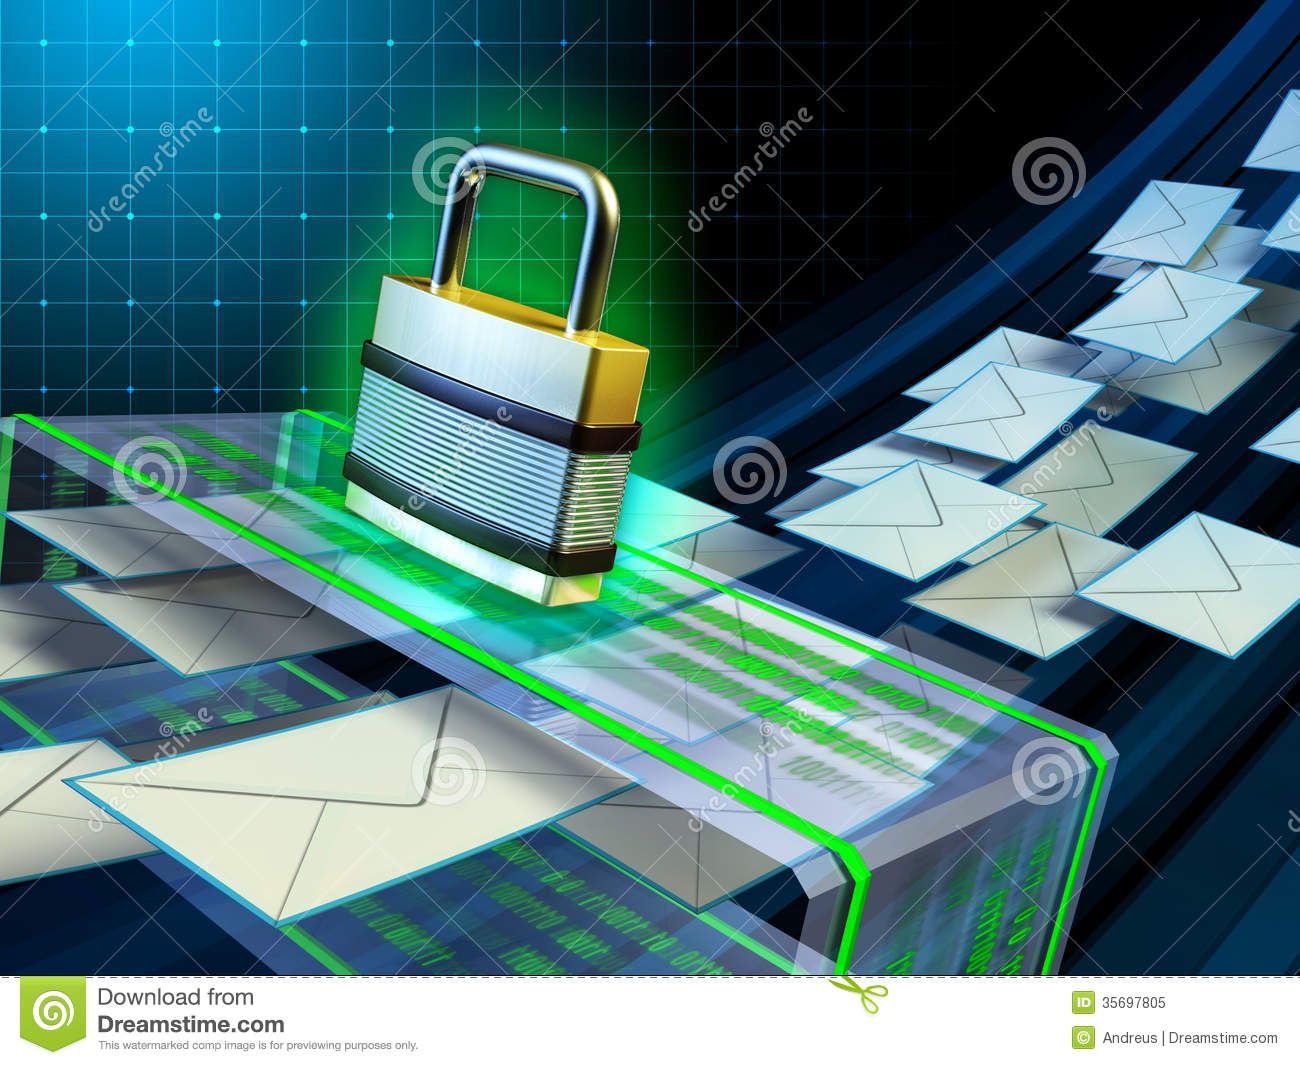 Email Security Royalty Free Stock Photo - Image: 35697805